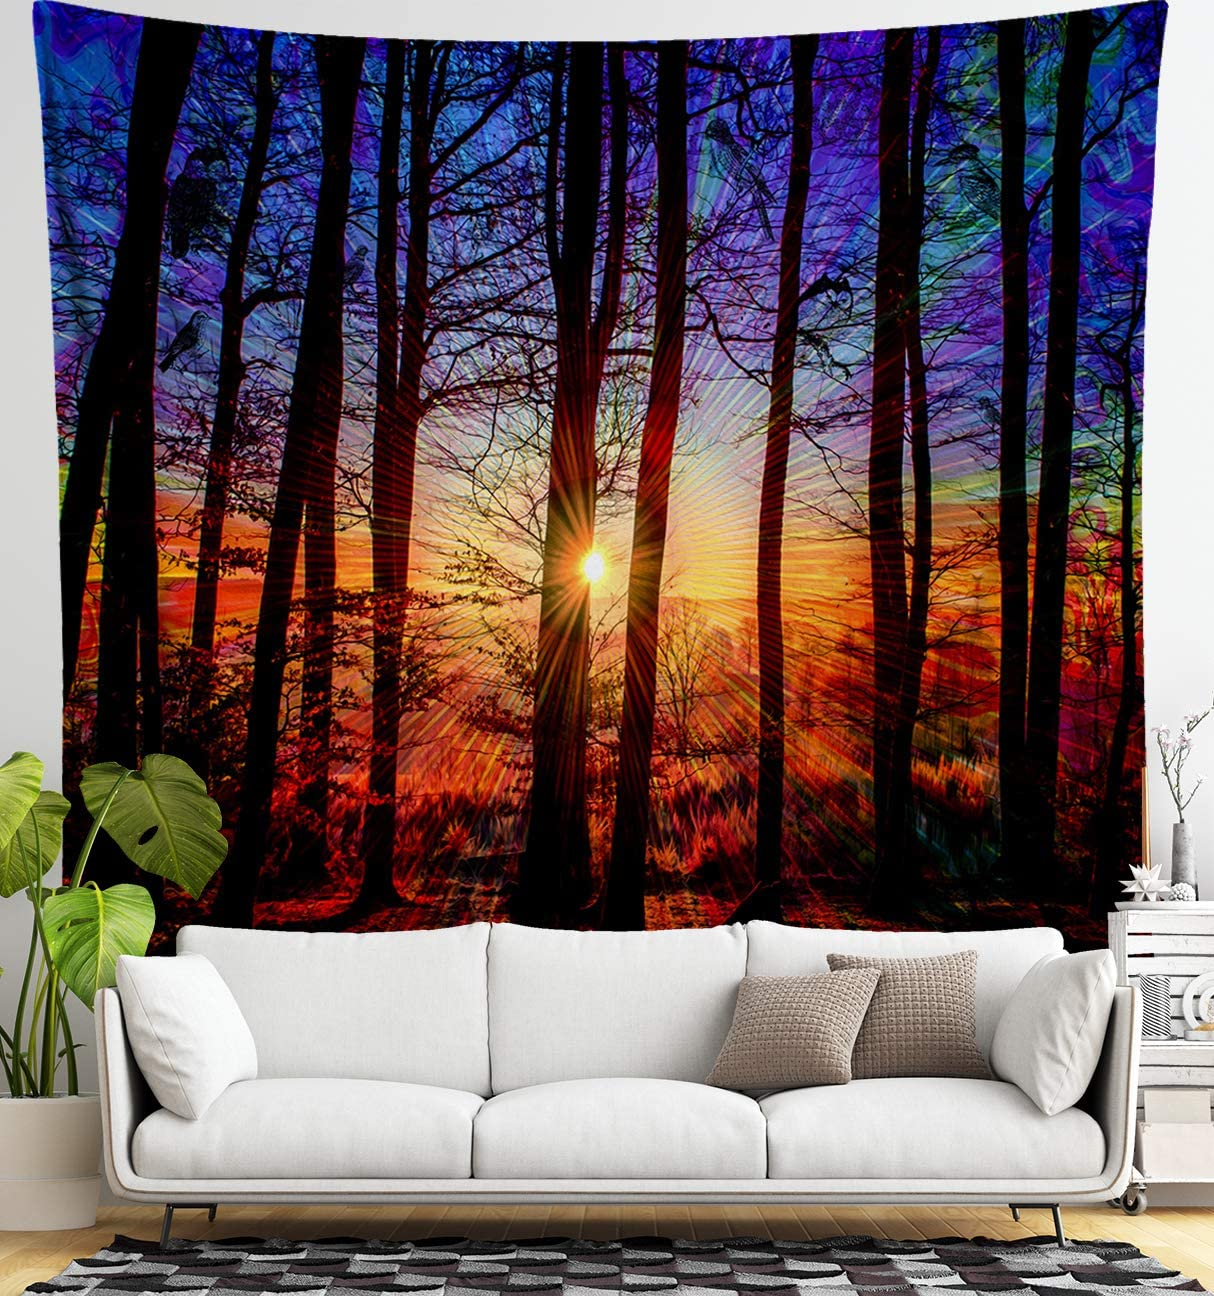 Lucid Eye Studios Sunrise Forest Tapestry- Red, Blue, Purple Wall Decor- Hidden Imagery- Woodland Bird Decor- Nature Wall Art for Bedroom, Dorm, Festivals 84 x 72 inches